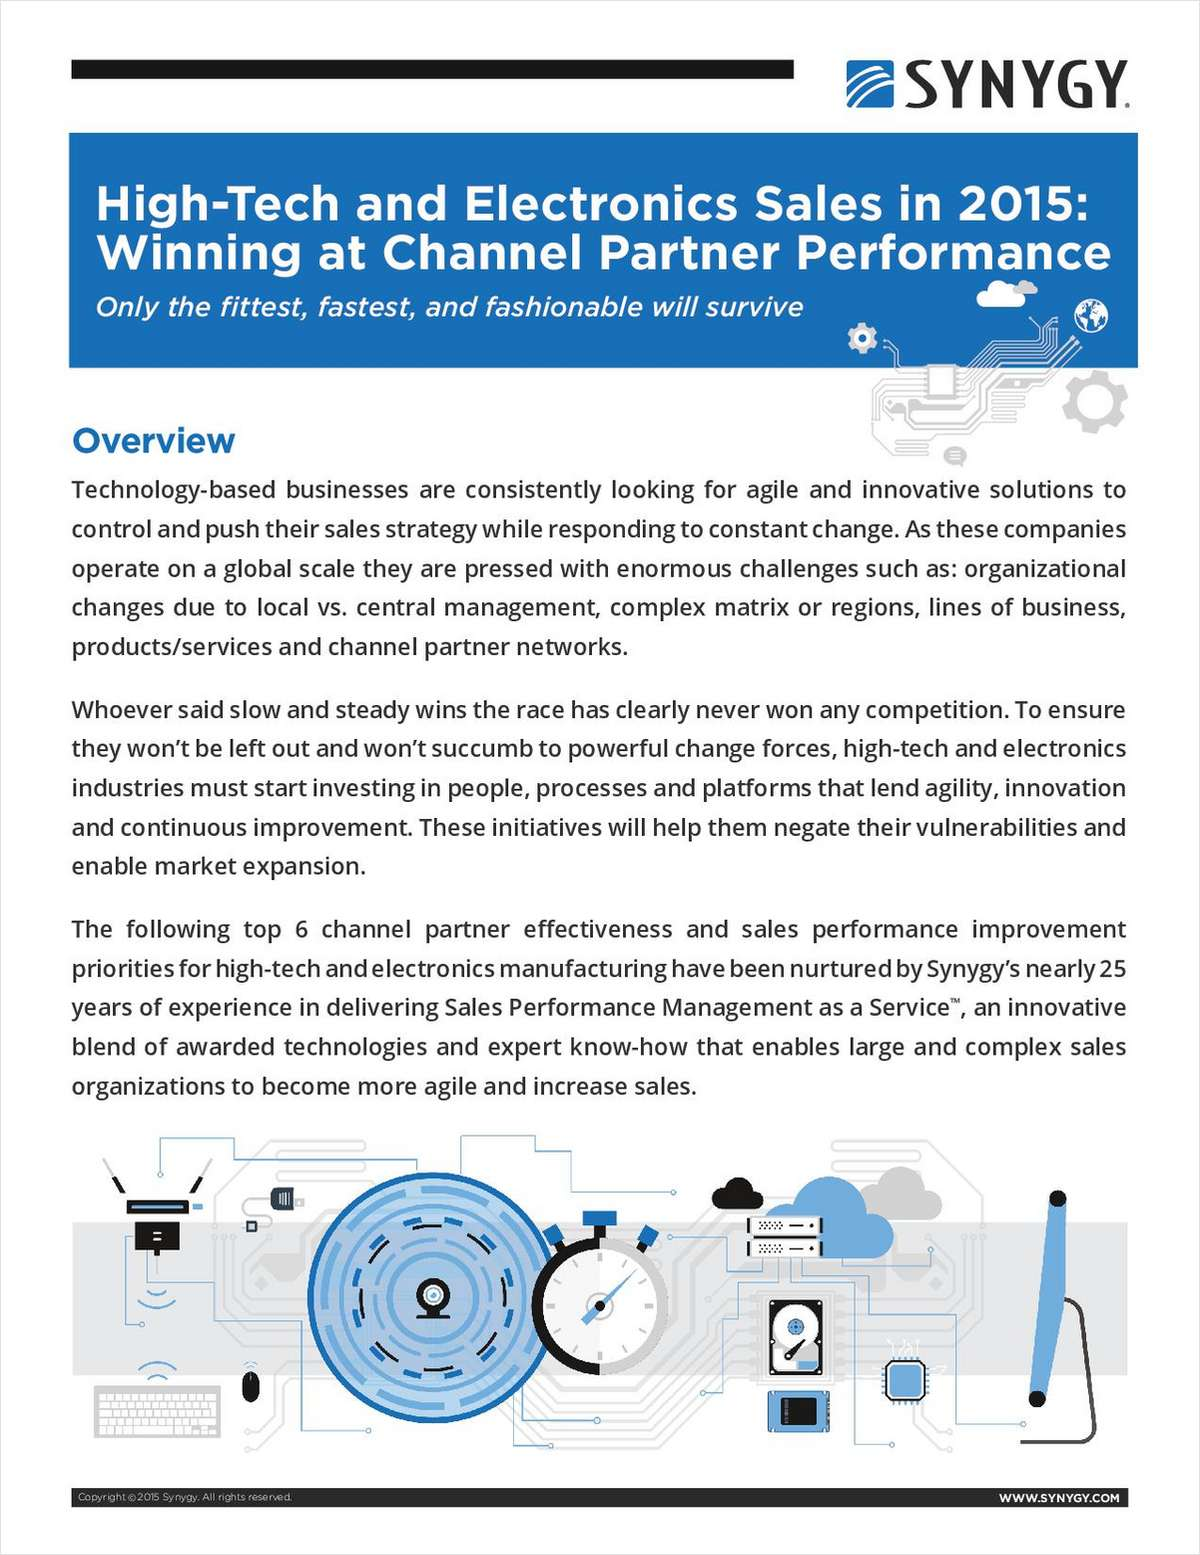 High-Tech and Electronics Sales in 2015: Winning at Channel Partner Performance